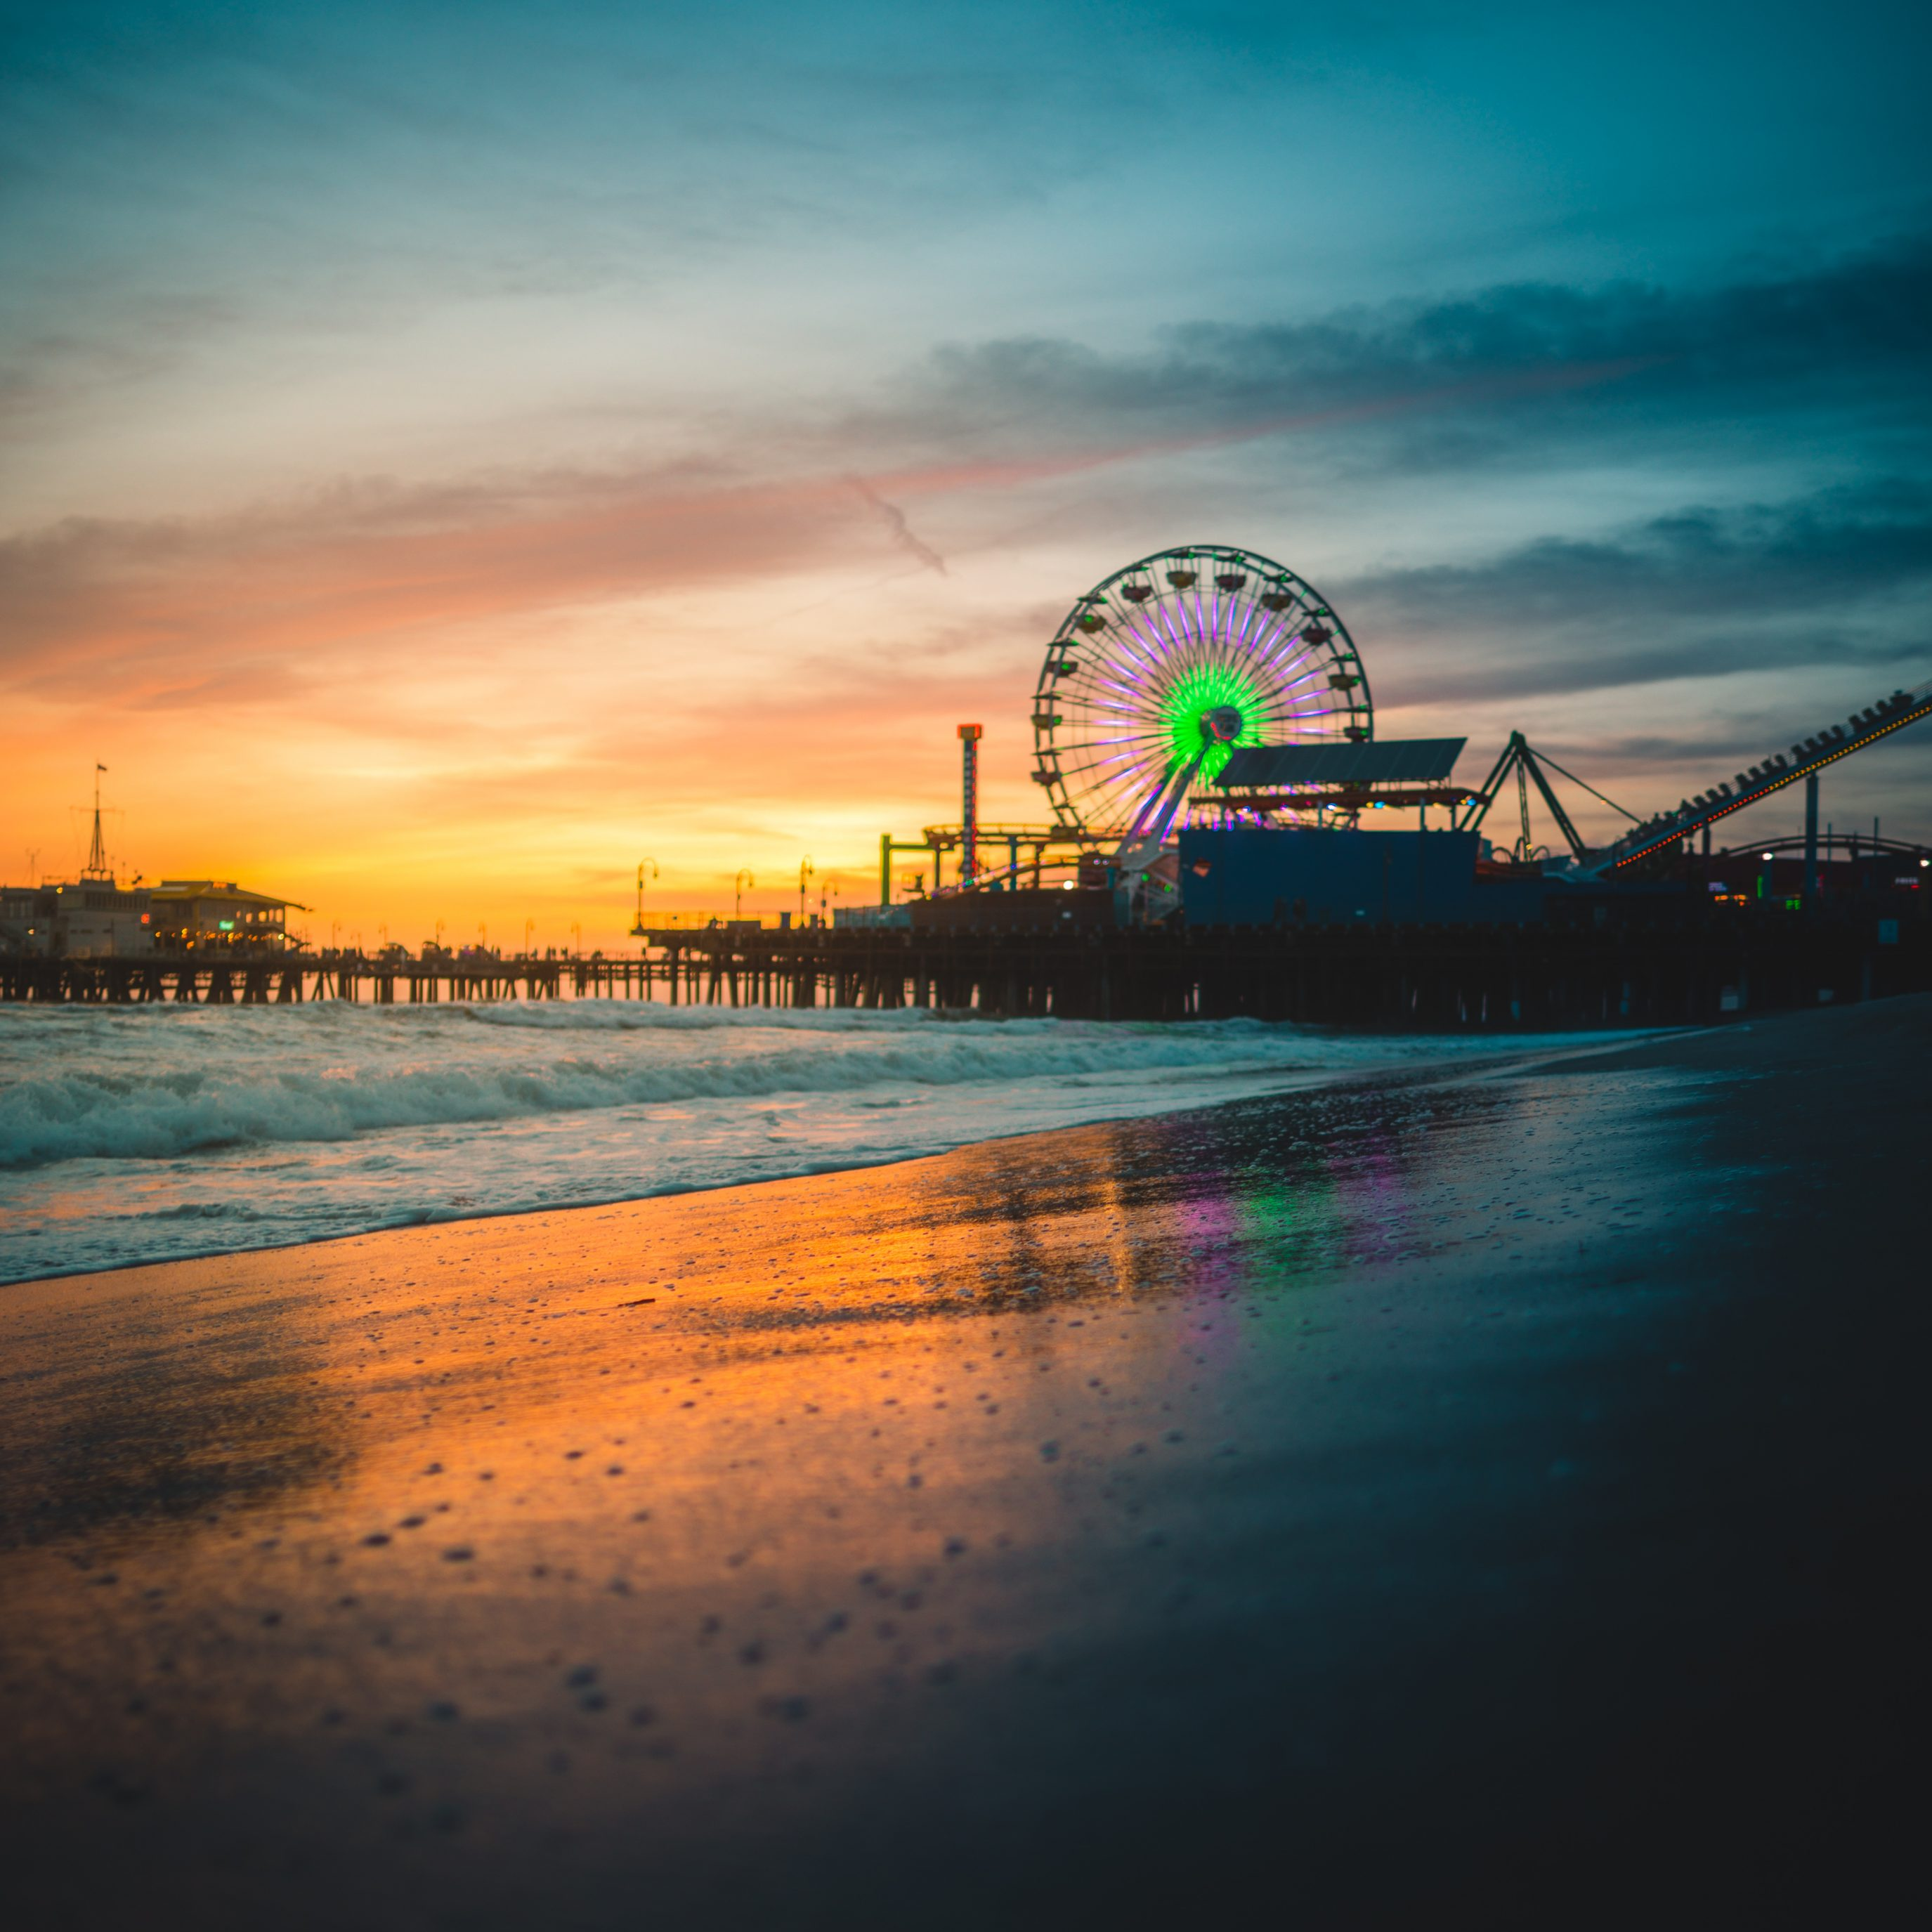 The Peir: The 19 Best Places To Photograph In Los Angeles (Travel Guide